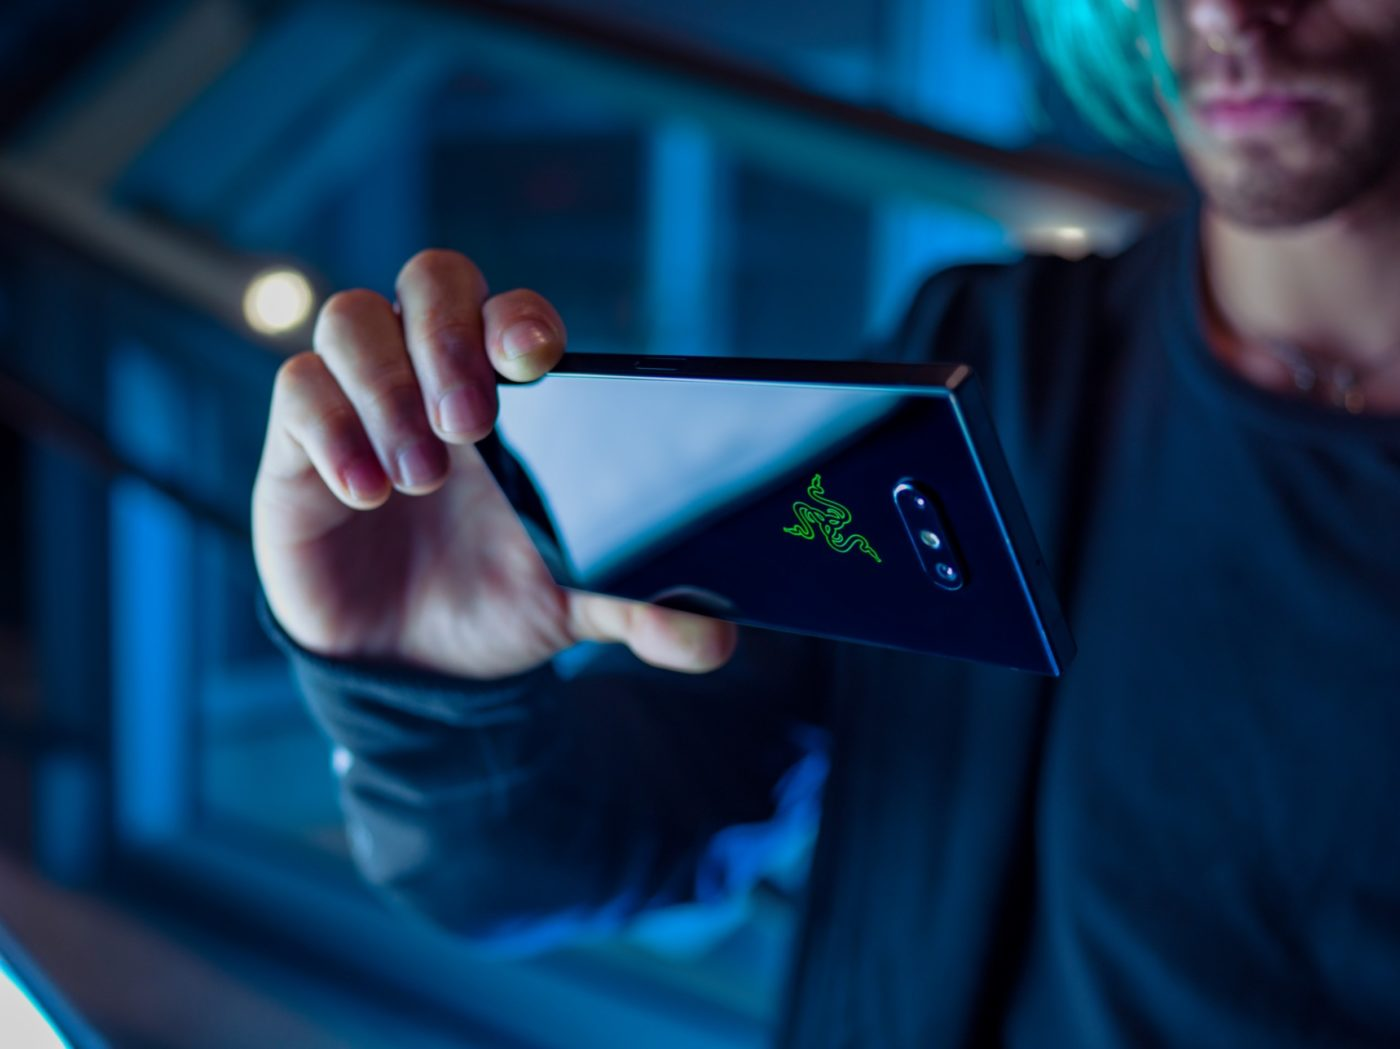 Razer Phone 2 Price Dropped To $499 Following Galaxy S10 Launch 3